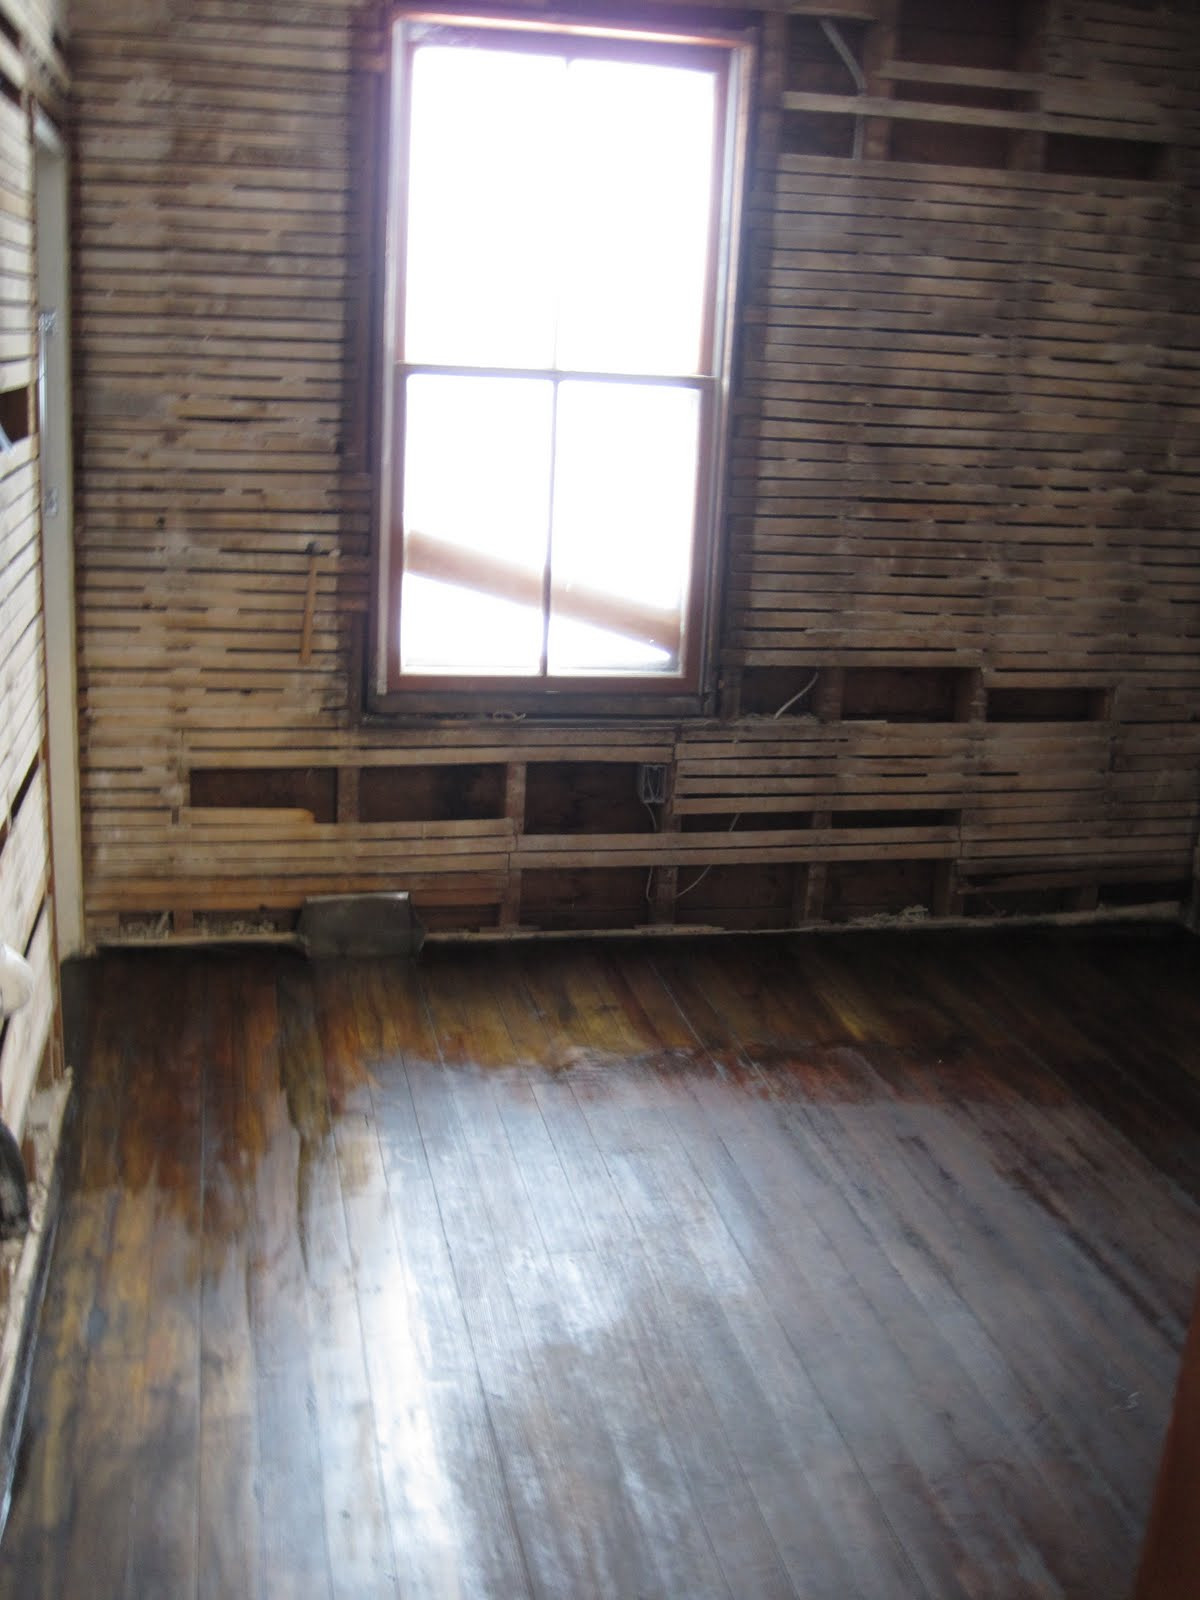 hardwood floor transition between uneven rooms of homemade floor wax paradise city homestead within for those curious here is what my floor looked like before and after a stain wax coat